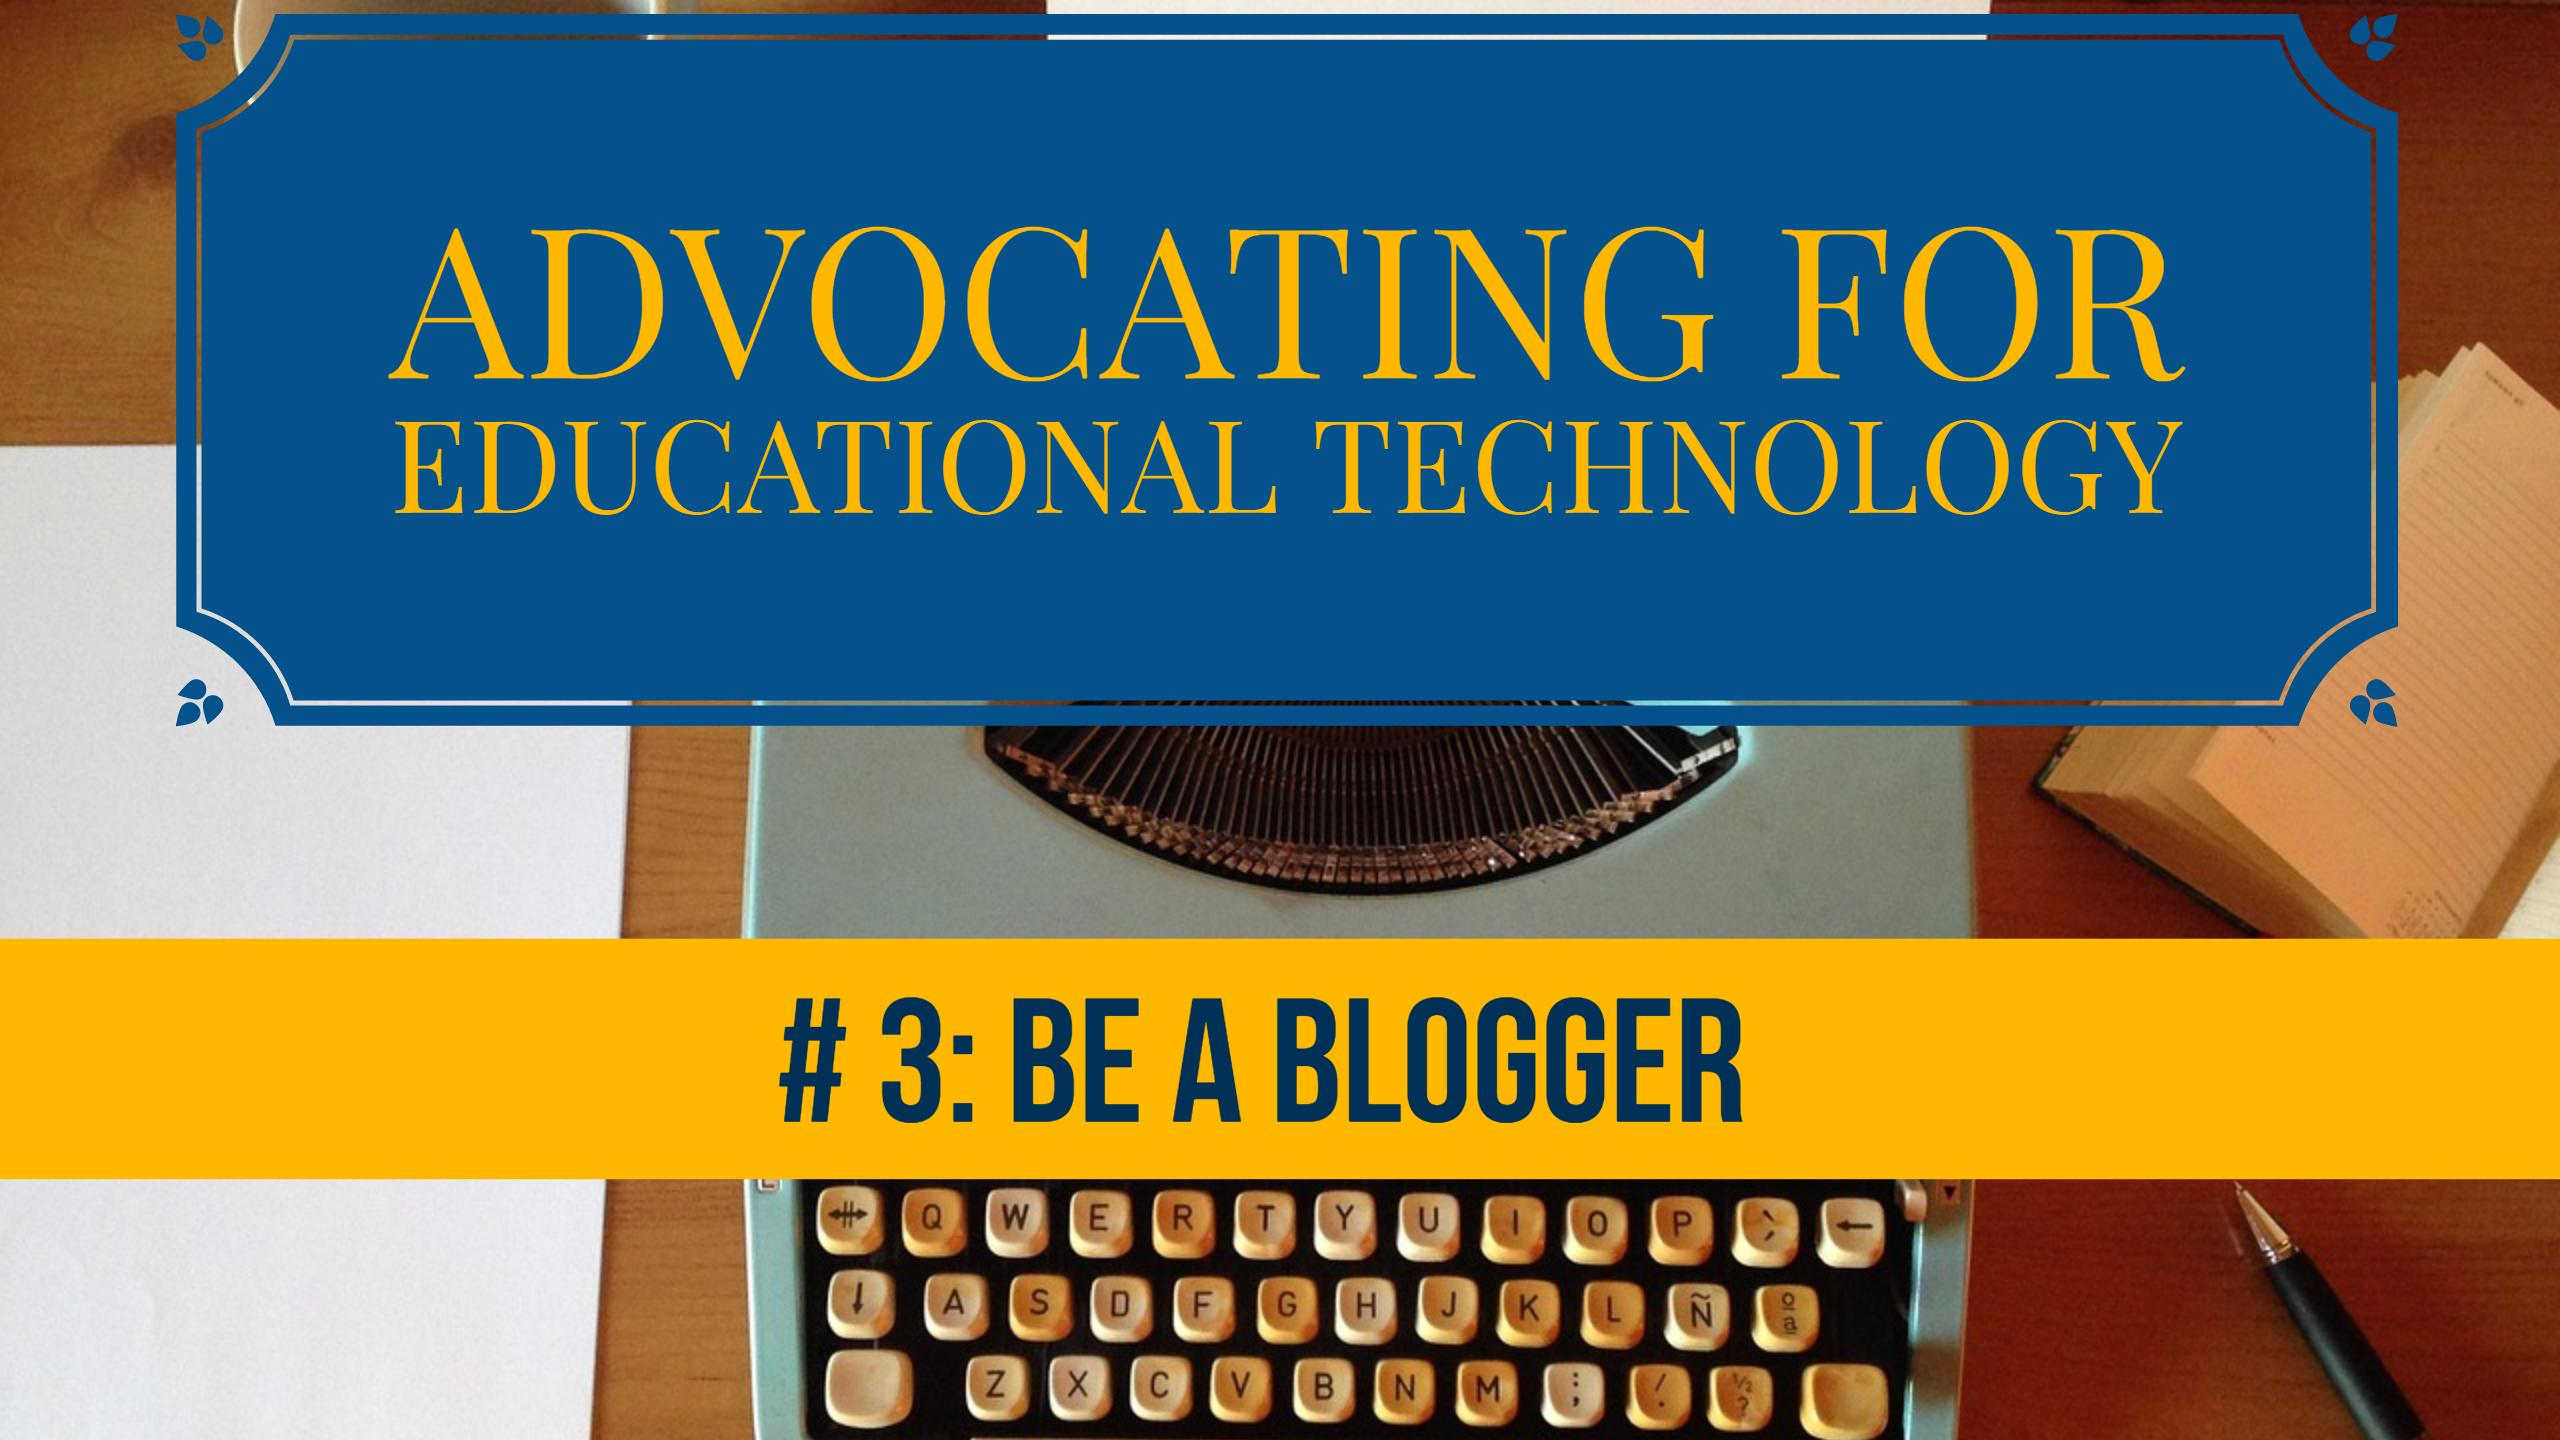 Educational Technology Advocate